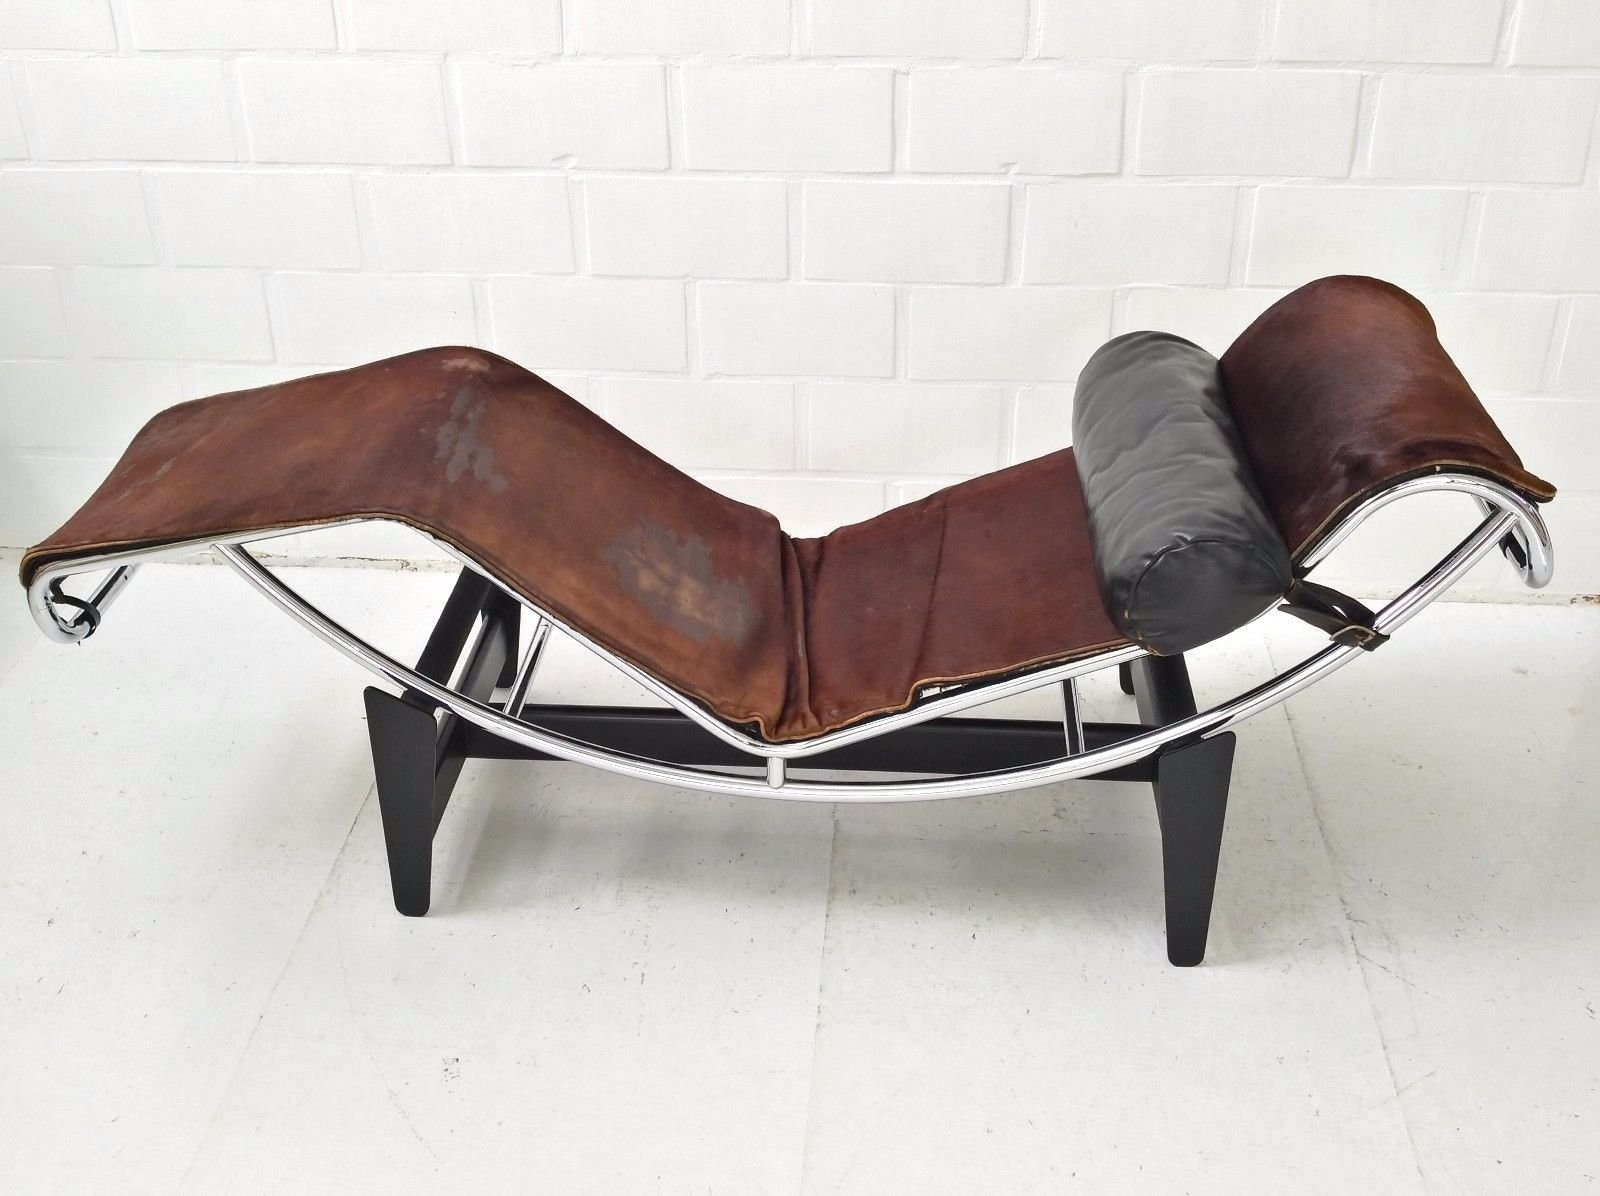 Lc4 chaise longue by le corbusier charlotte perriand for Chaise longue le corbusier wikipedia